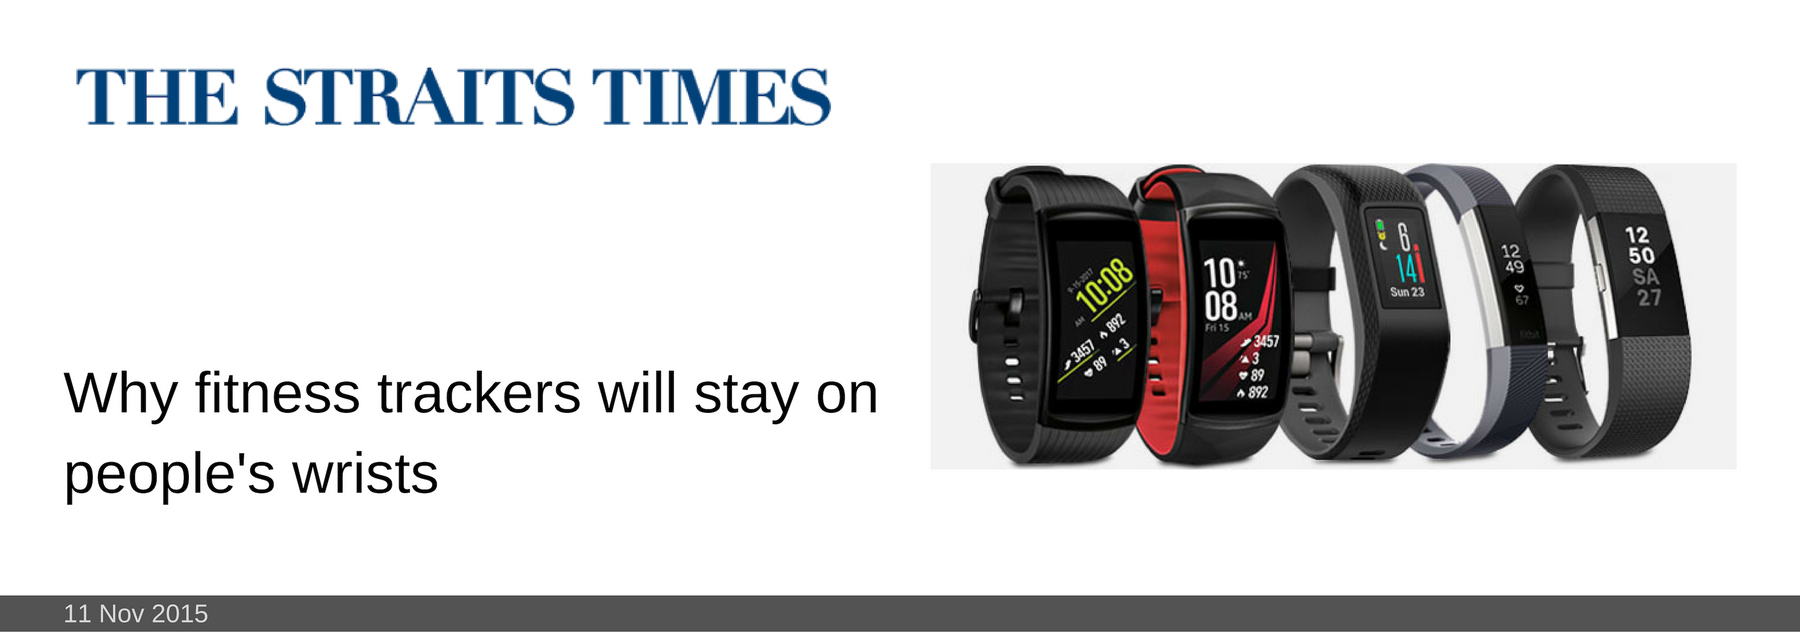 11 NOV 2015: Why fitness trackers will stay on people's wrists